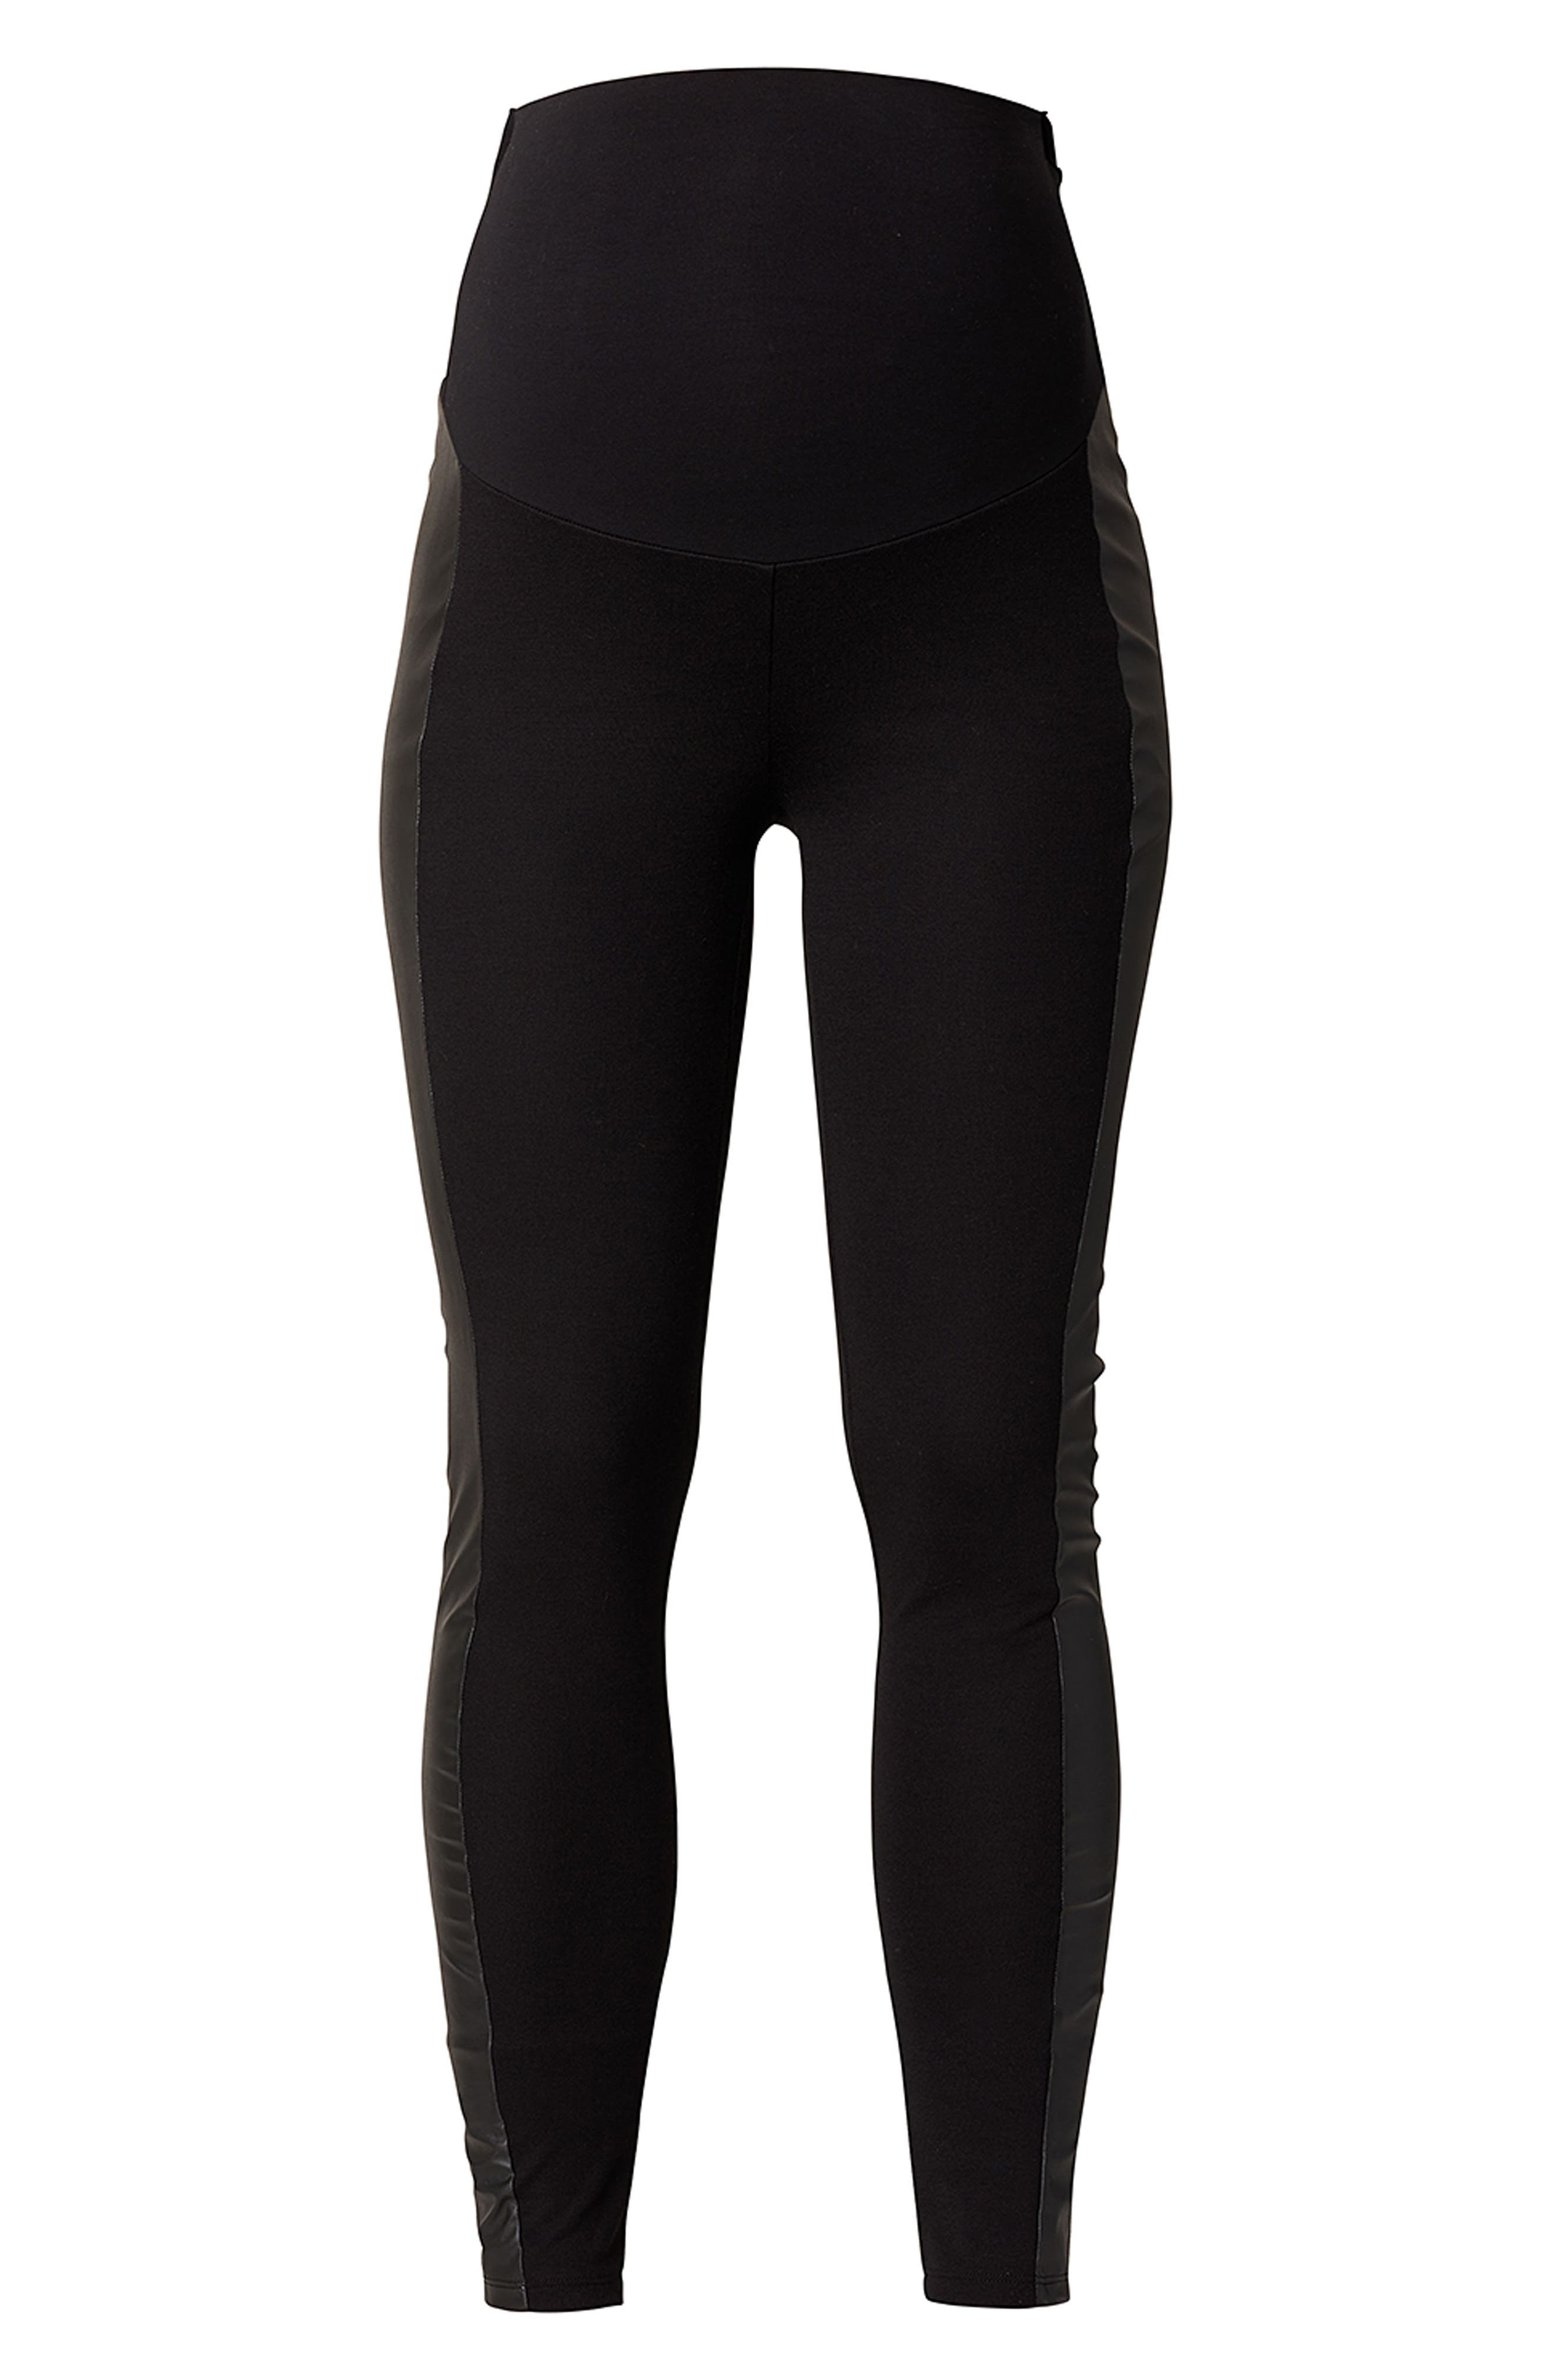 Over the Belly Maternity Leggings,                         Main,                         color, Black